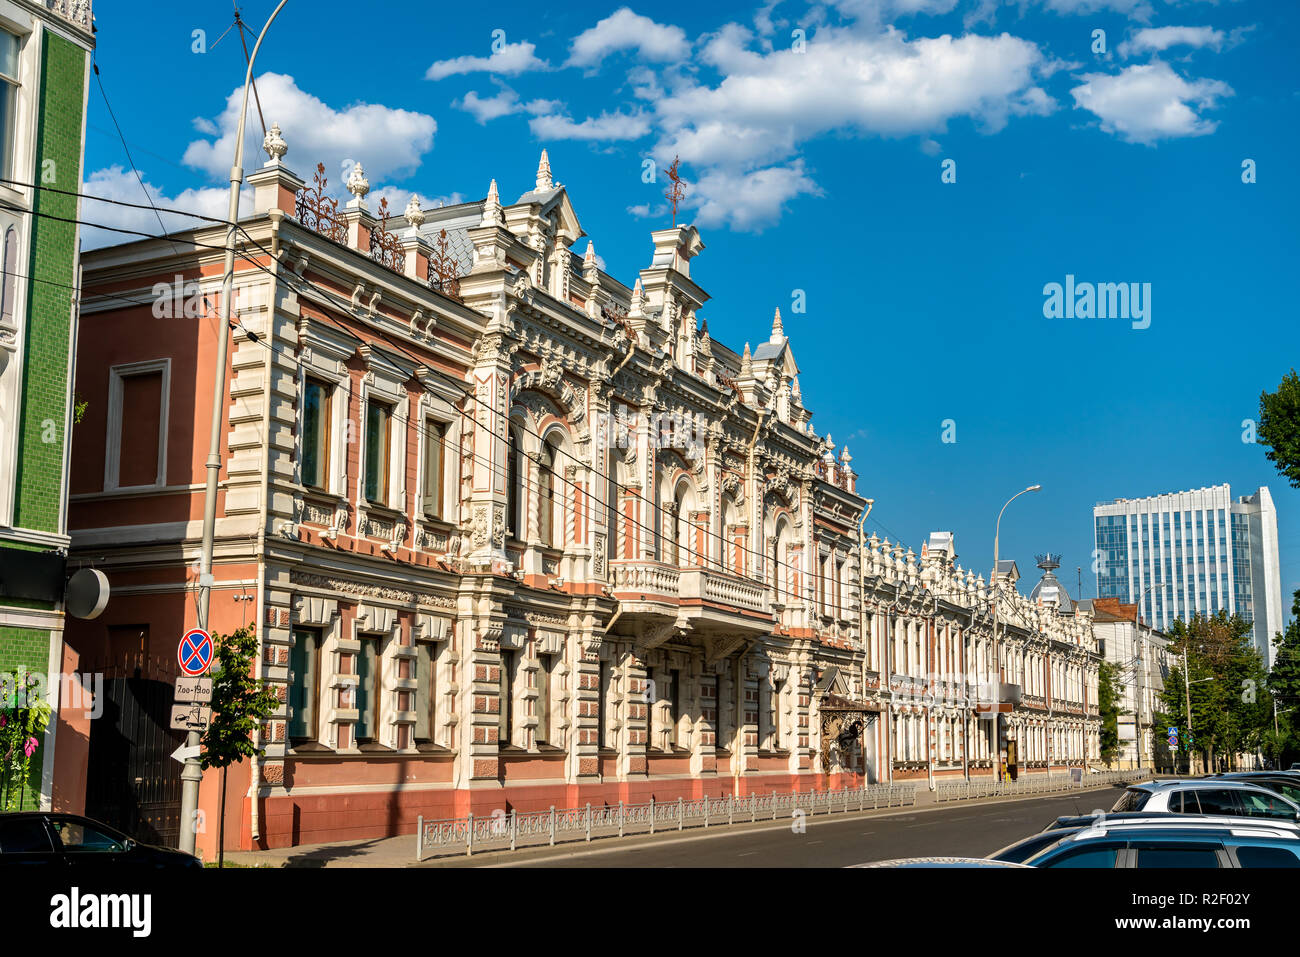 Traditional Buildings In The City Centre Of Krasnodar Russia Stock Photo Alamy